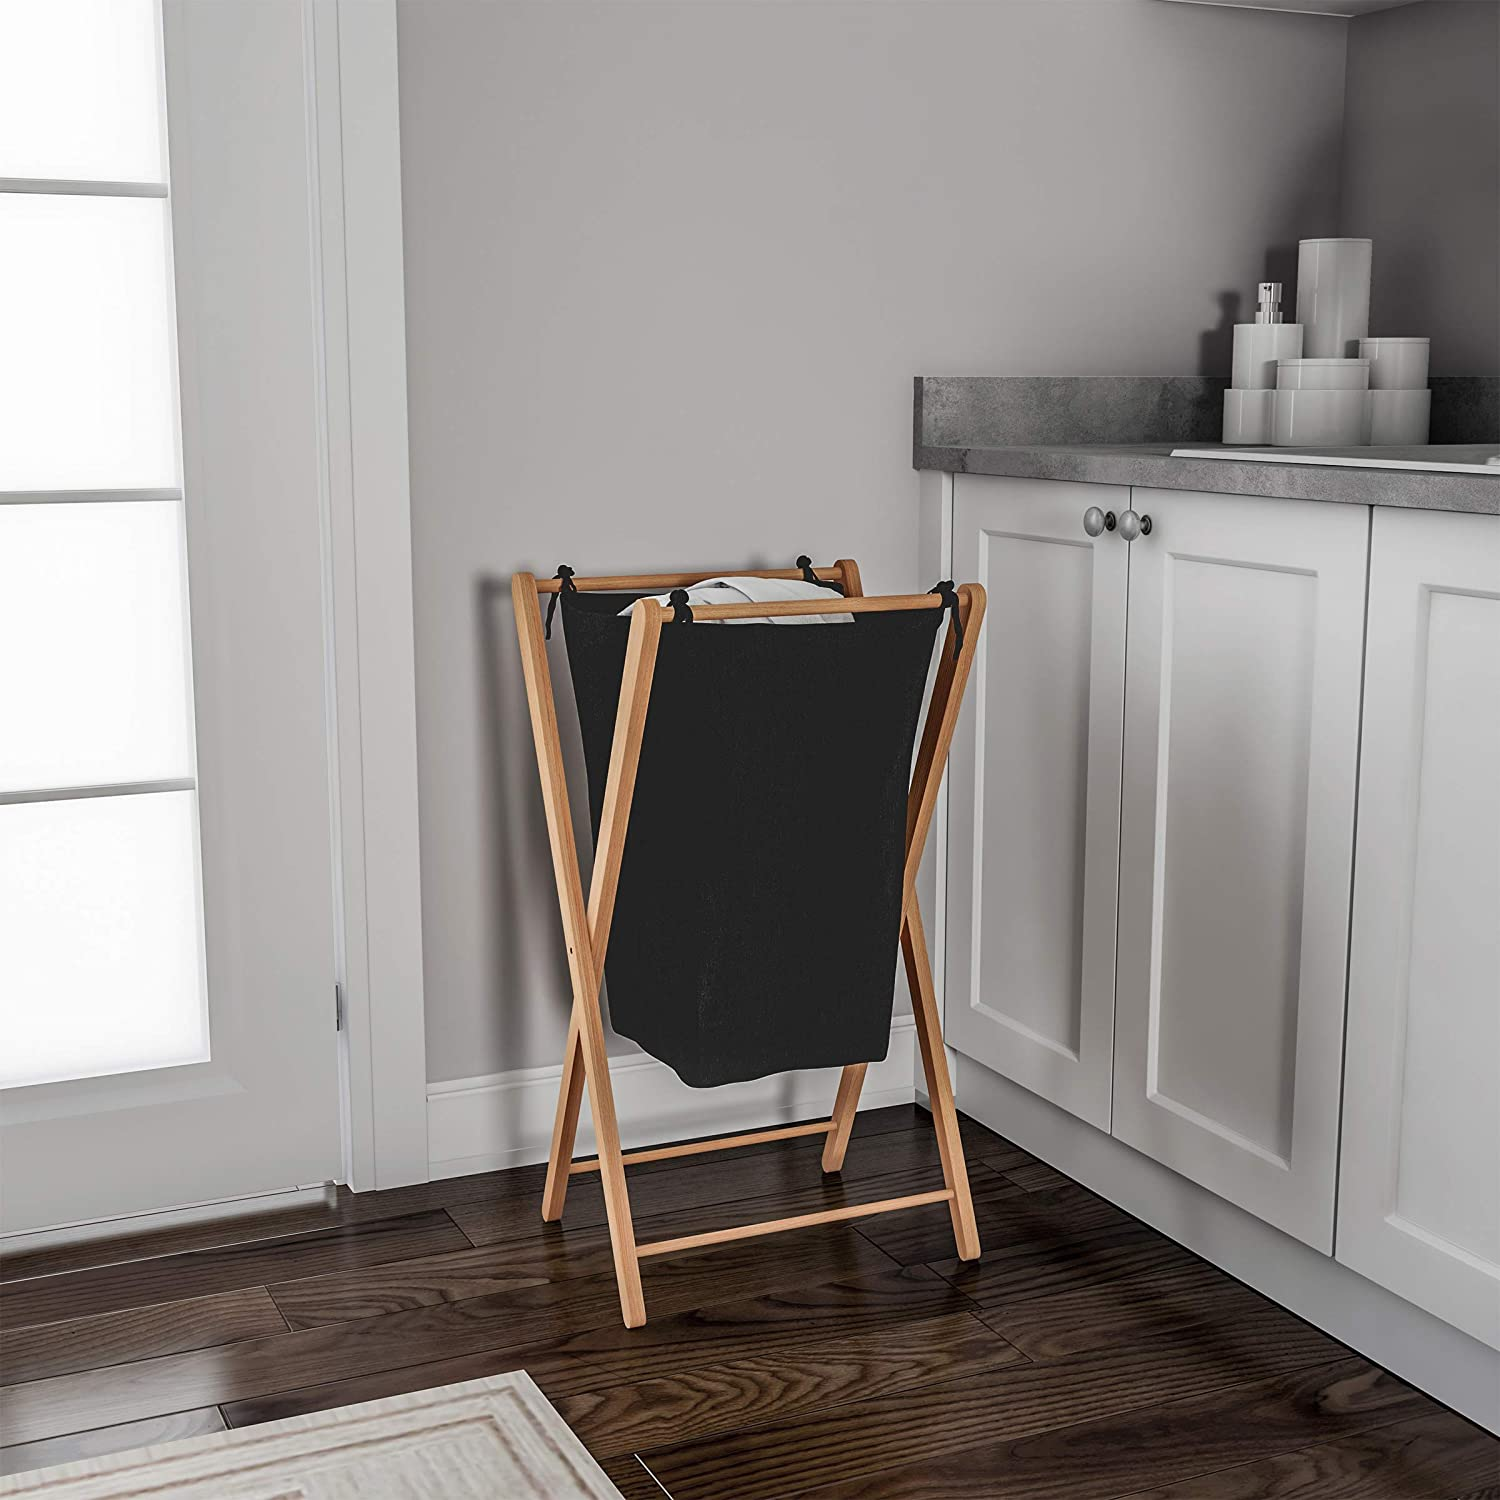 Lavish Home Foldable Bamboo Laundry Hamper-Lightweight Space Saving Collapsible X-Frame Linen Sorter with Natural Finish for Home or Dorm Trademark 83-108